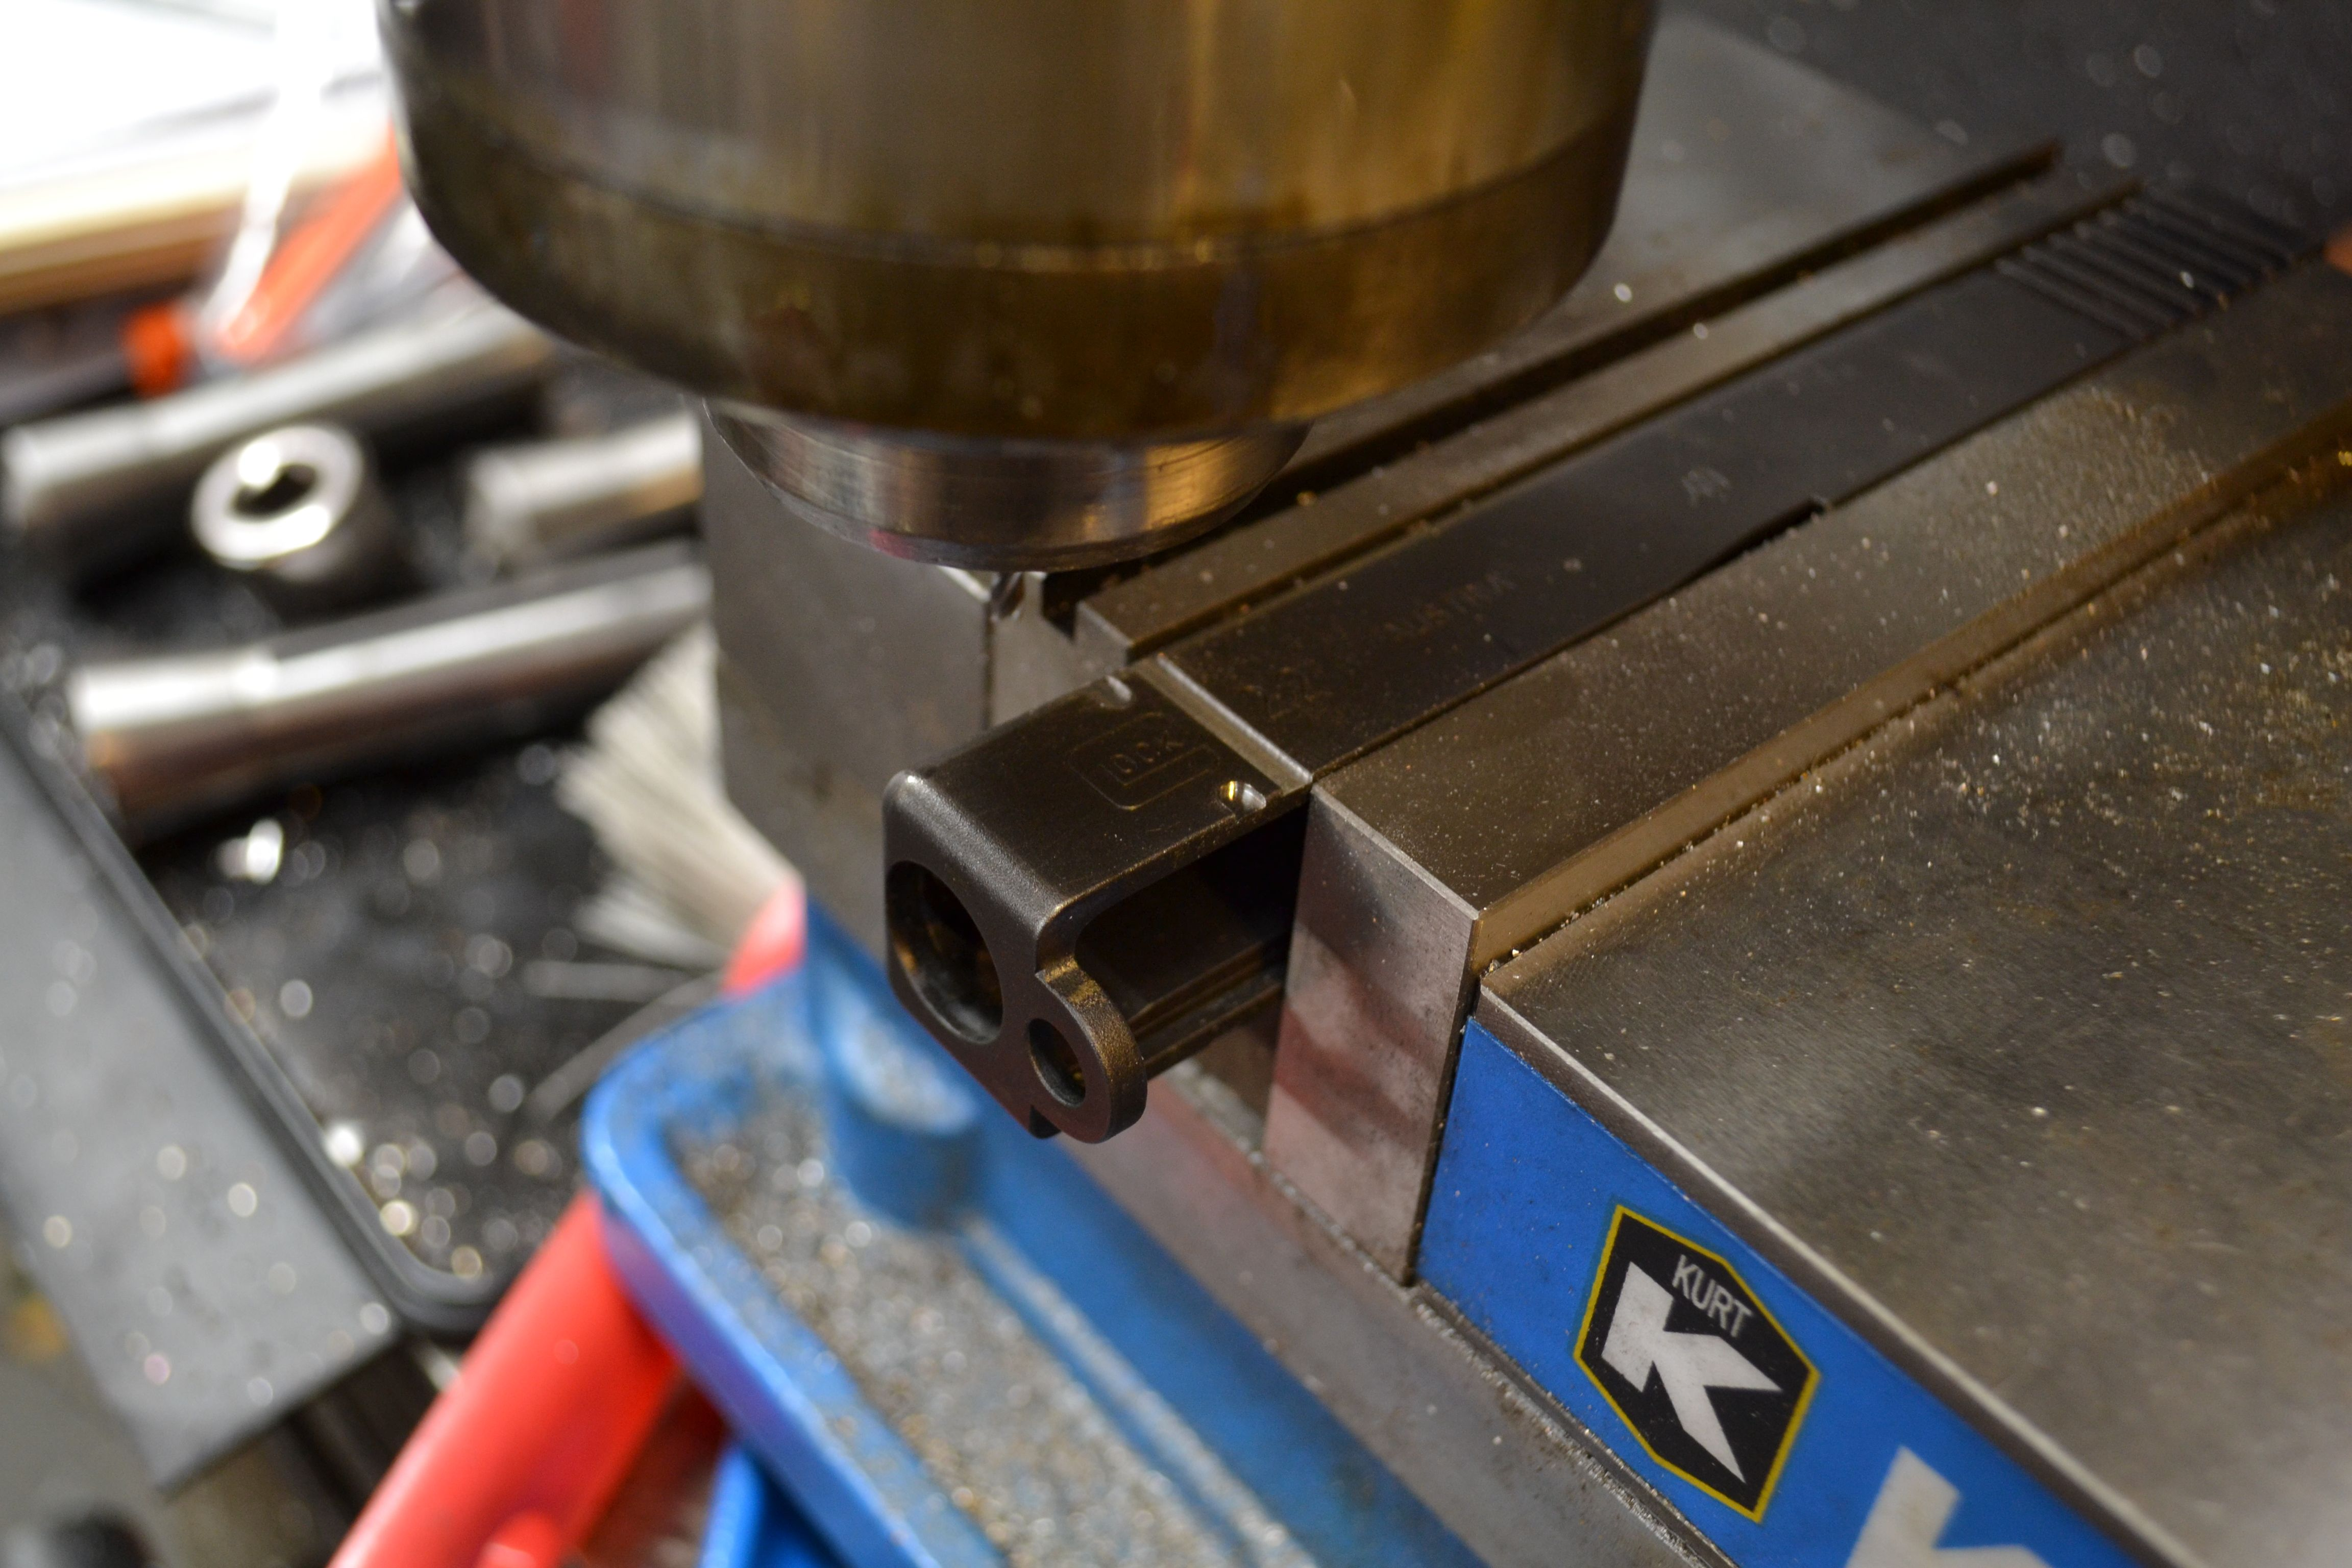 Machining front cocking serrations on a Glock slide